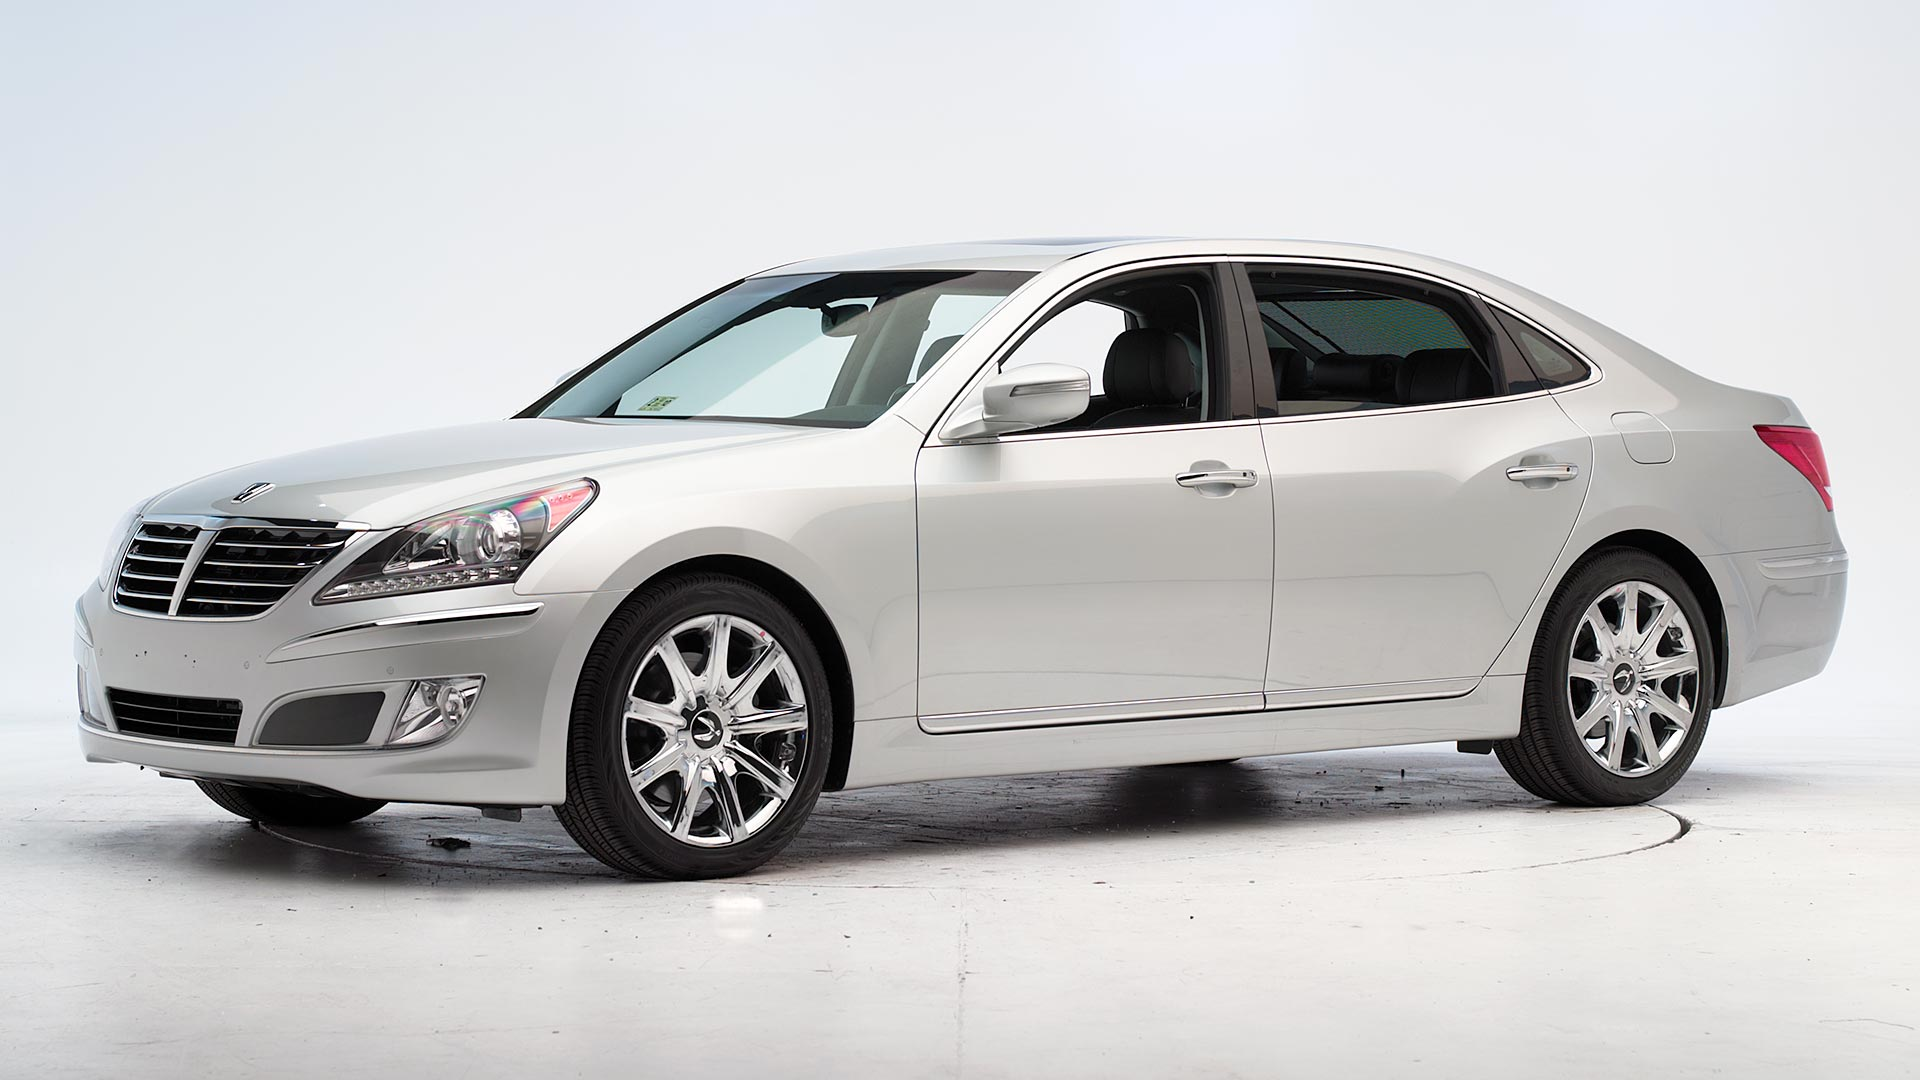 2014 Hyundai Equus 4-door sedan